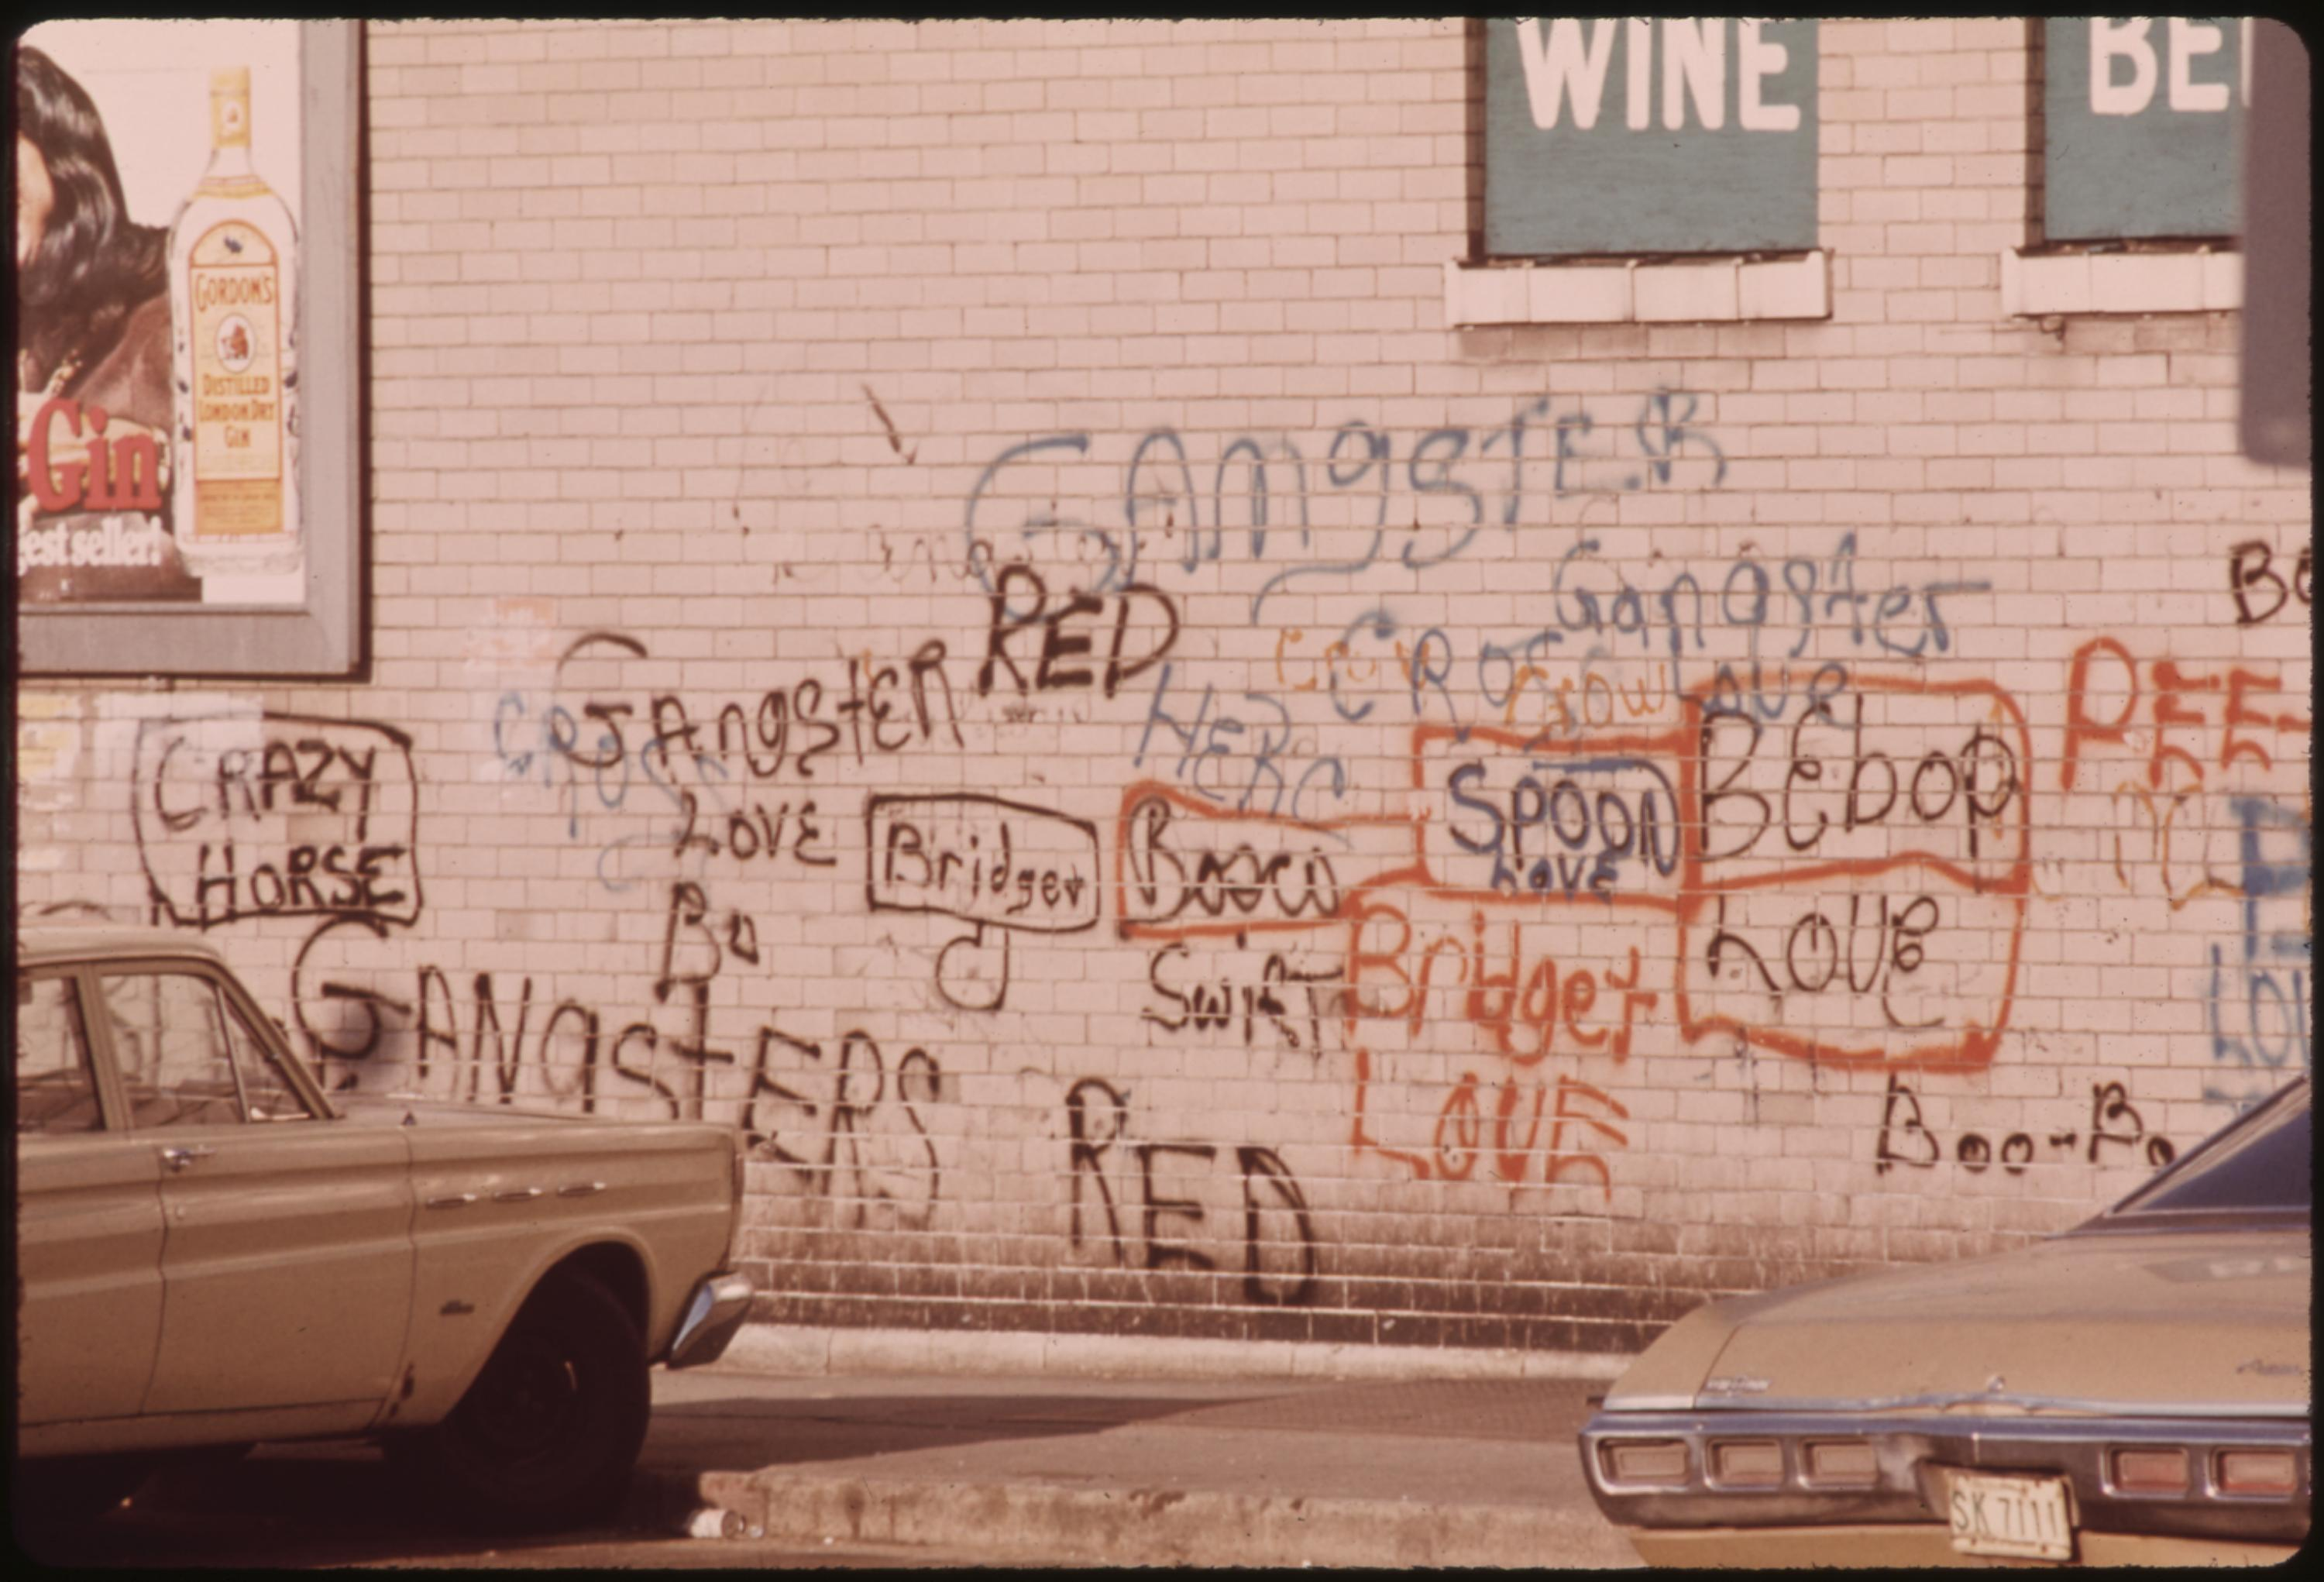 Graffiti On A Wall In Chicago. Such Writing Has Advanced And Become An Art Form, Particularly In Metropolitan Areas, 05:1973